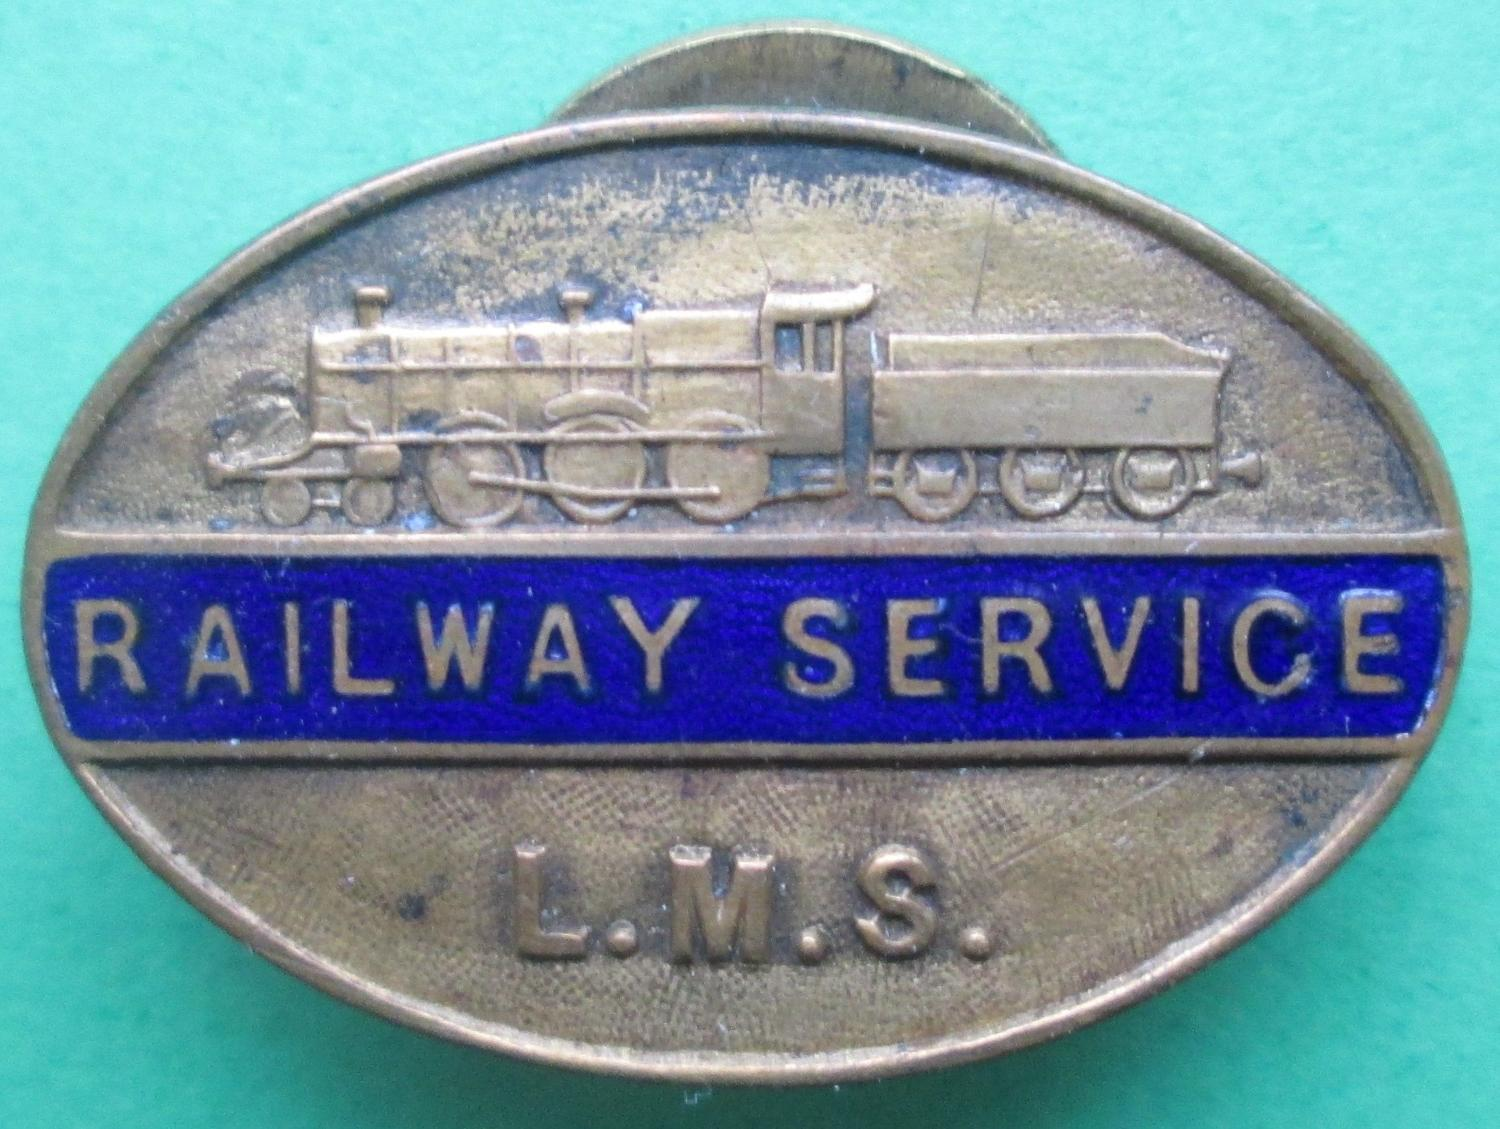 A LONDON MIDLAND SCOTTISH RAILWAY SERVICE LAPEL BADGE